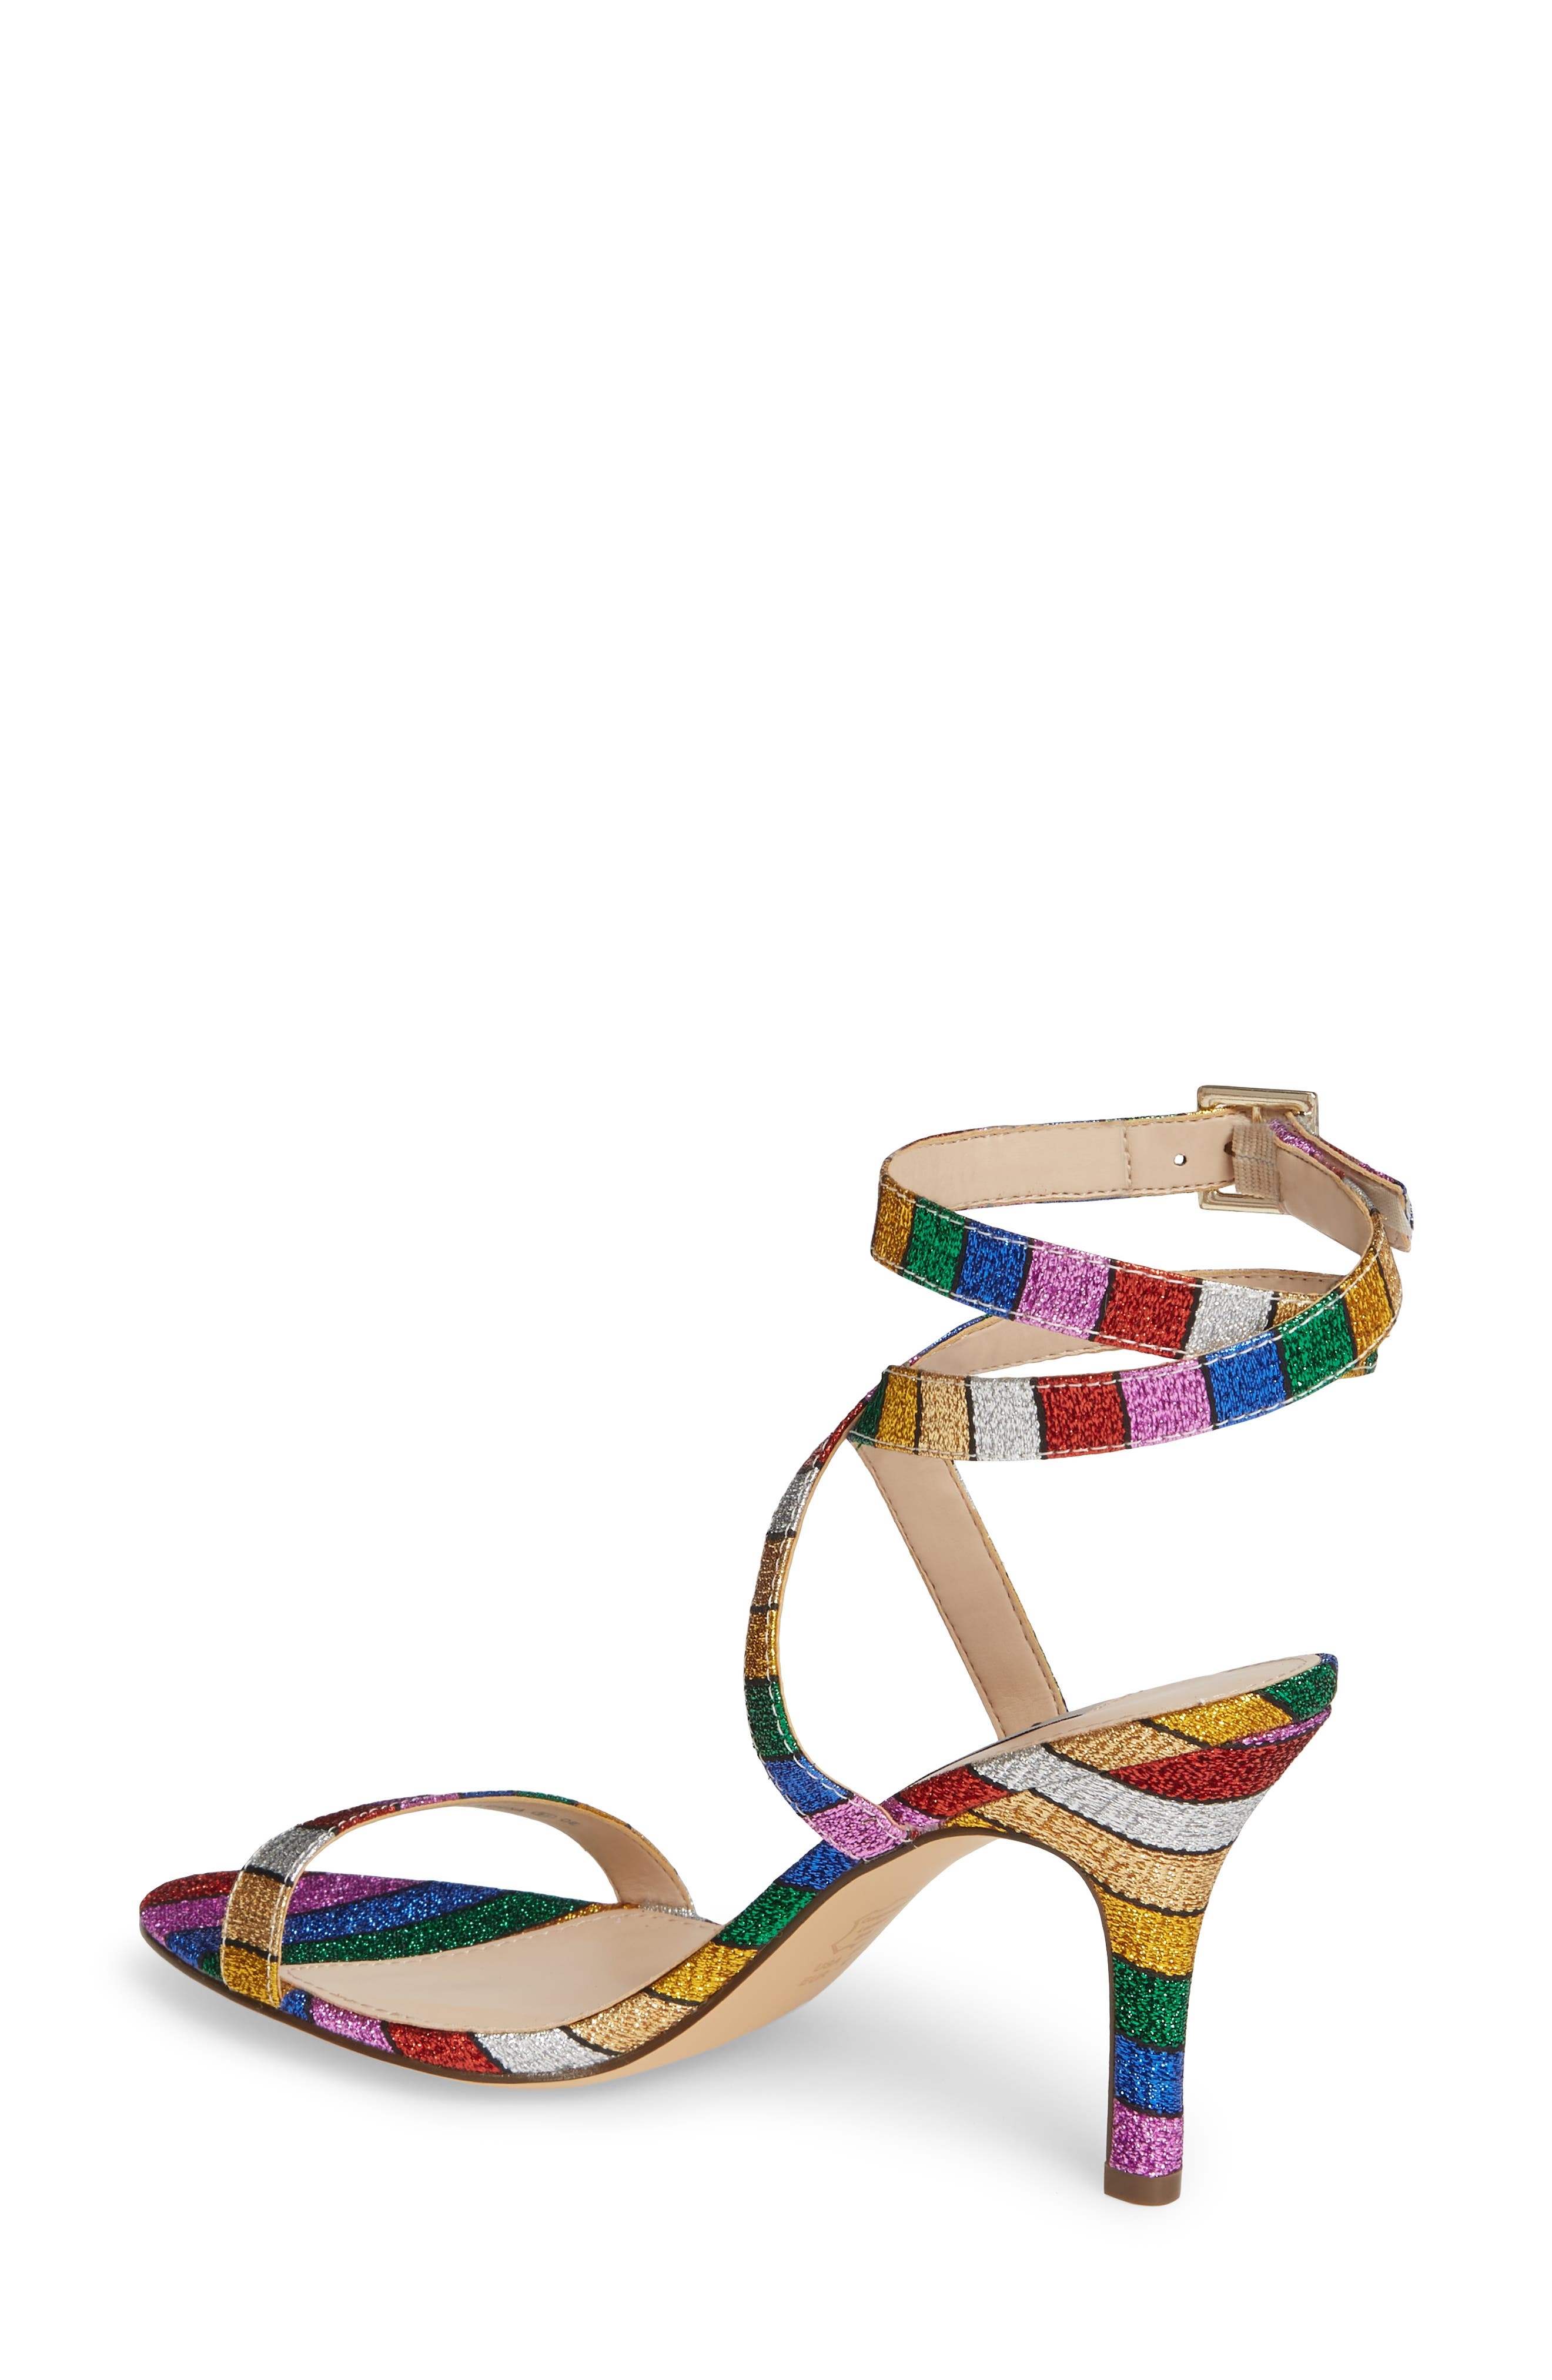 NINA, Vanna Ankle Strap Sandal, Alternate thumbnail 2, color, RAINBOW MULTI FABRIC